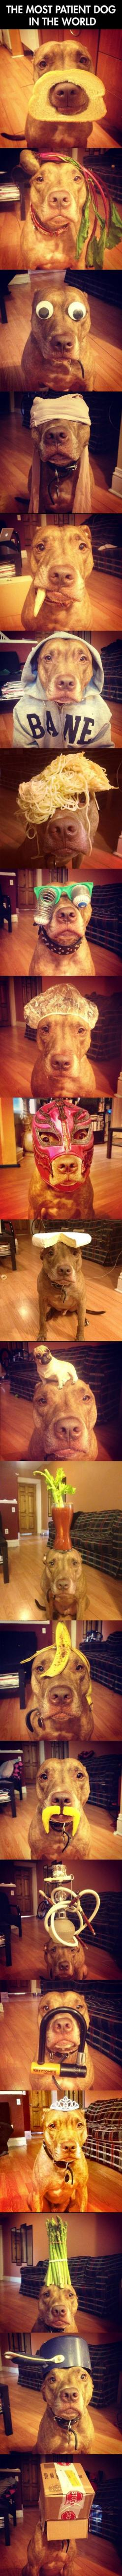 you can put anything on this dog's head…: Patient Dog, Awesome Dog, Dogs, Pitbull, Funny, Pit Bull, Puppy, Animal